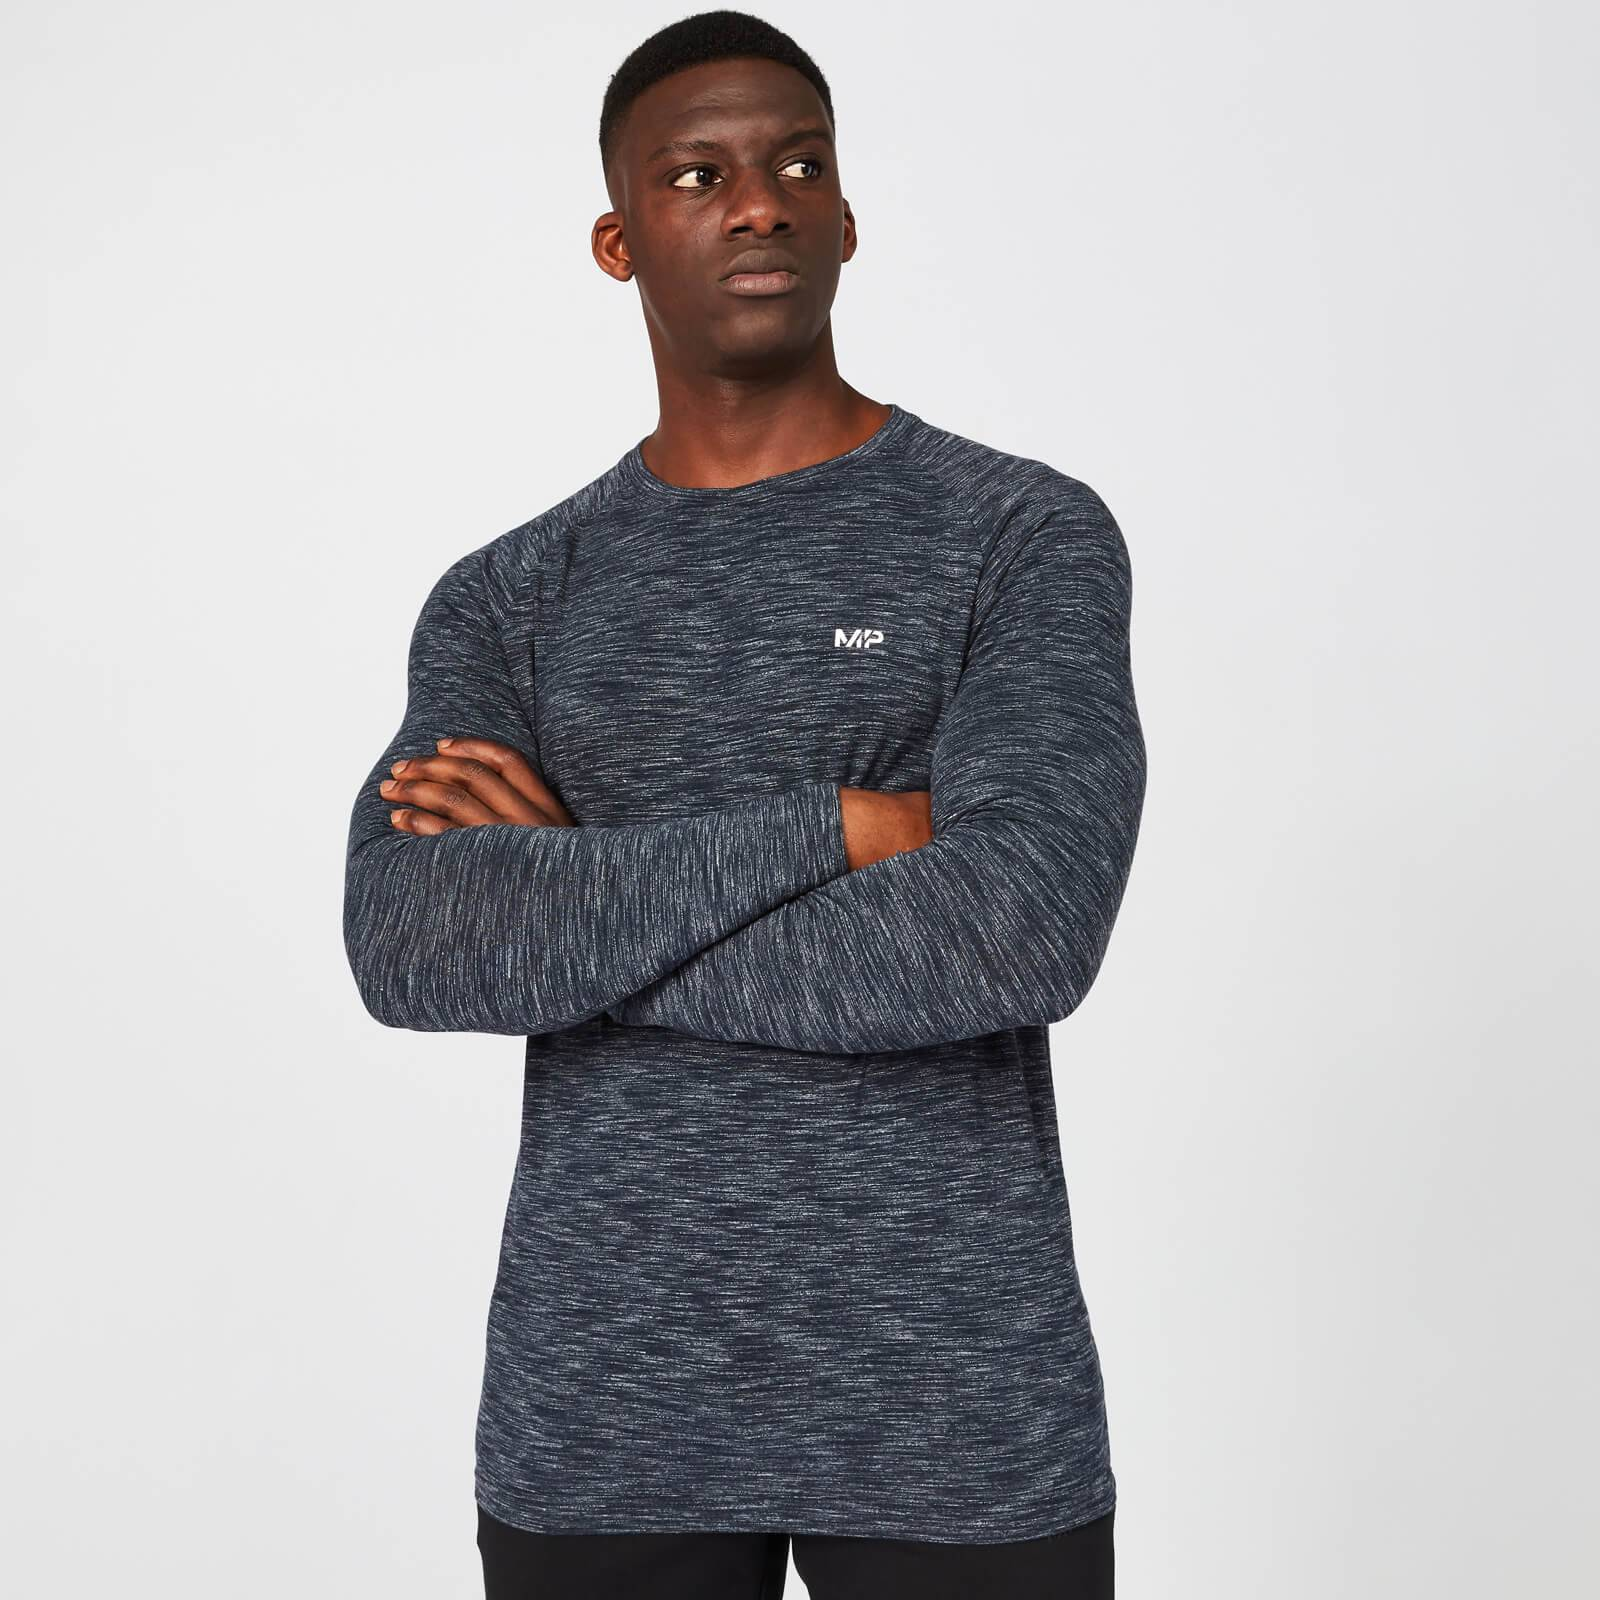 Mp Men's Performance Long Sleeve Top - Navy Marl - XL